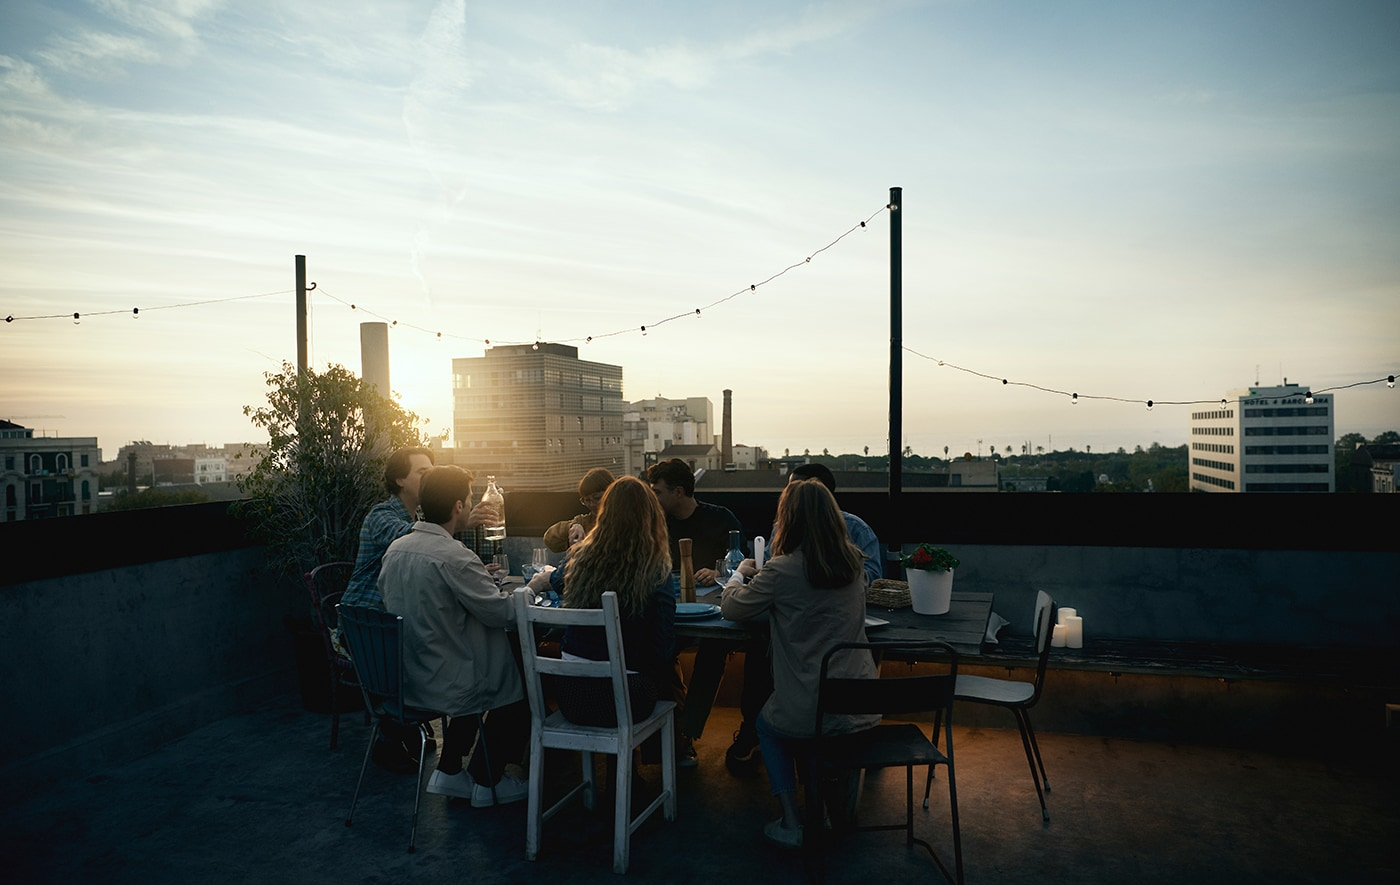 Link to 'a better world starts at home' IDEA - image of a group of friends gathered around a rooftop table at sunset.